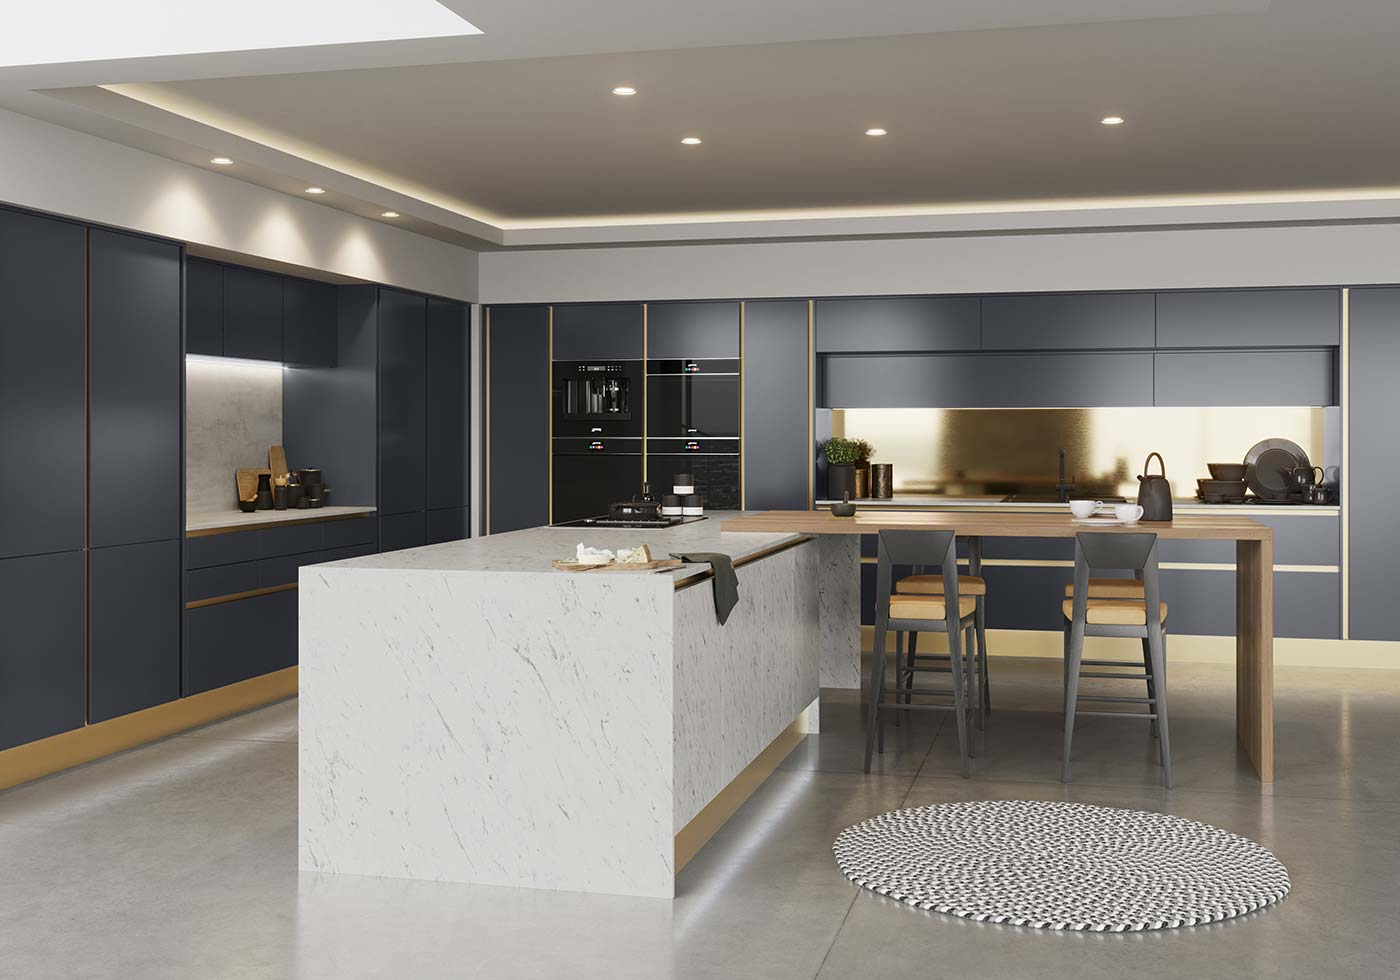 BLue kitchen with brass accents